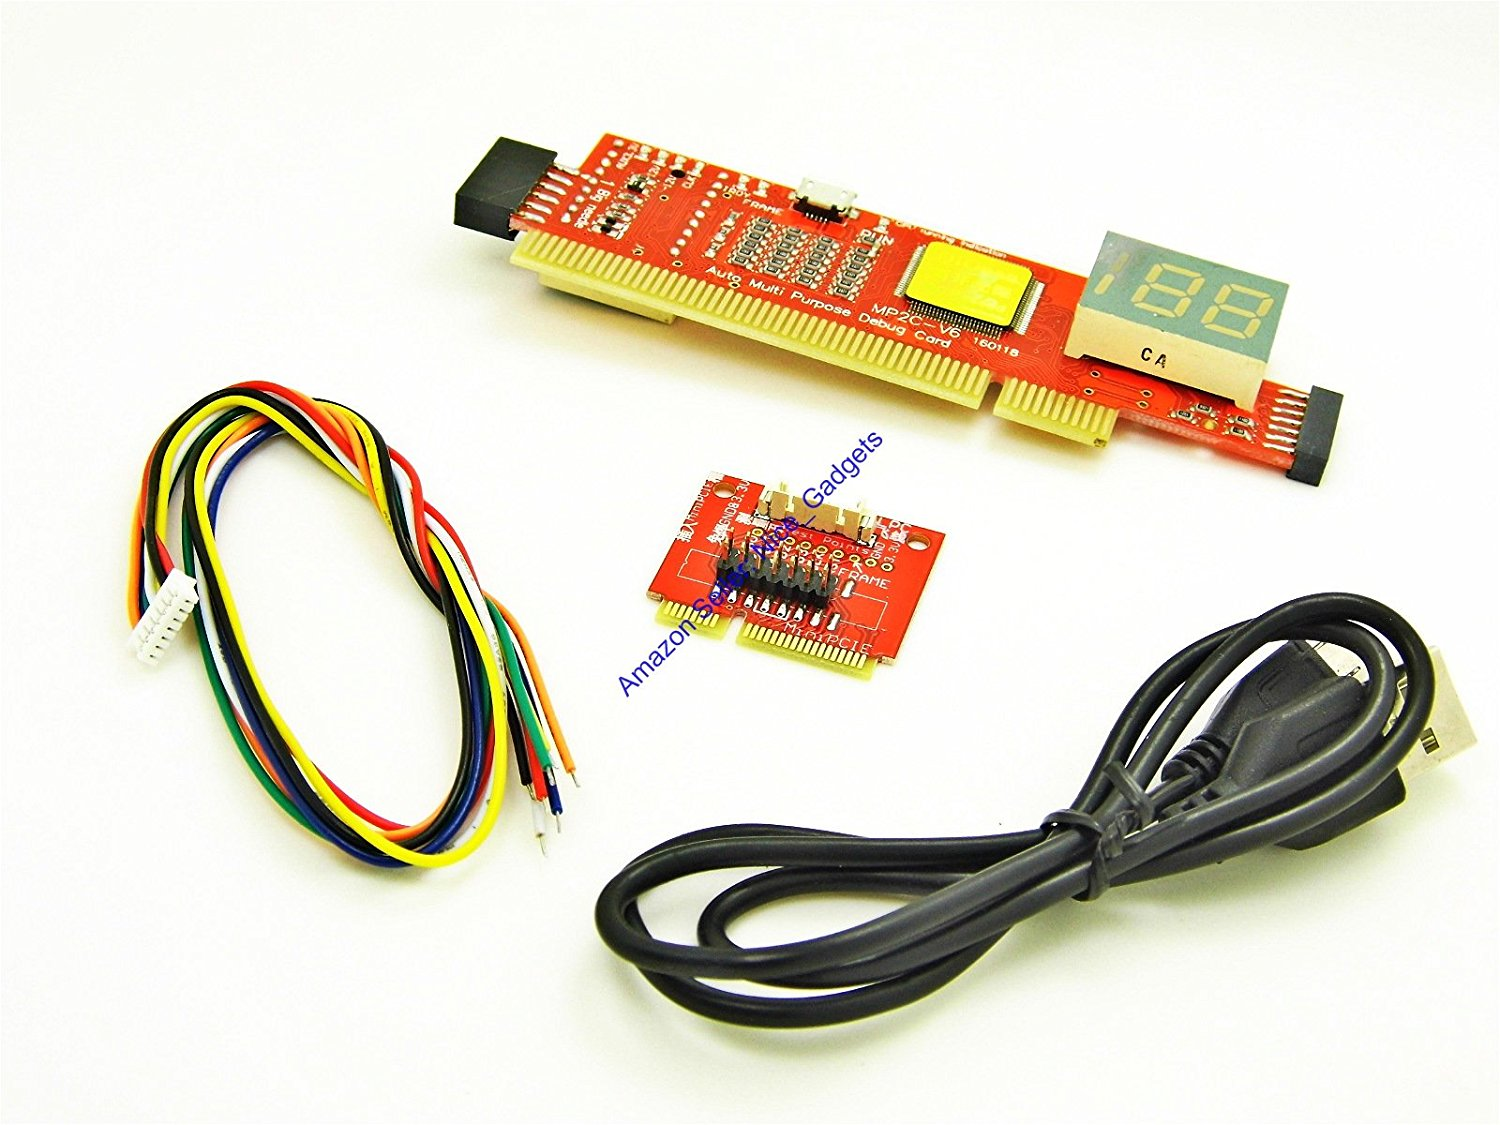 Buy New Complete Pc Laptop Motherboard Cpu Power Supply Diagnostic Test Kit In Cheap Price On Alibaba Com